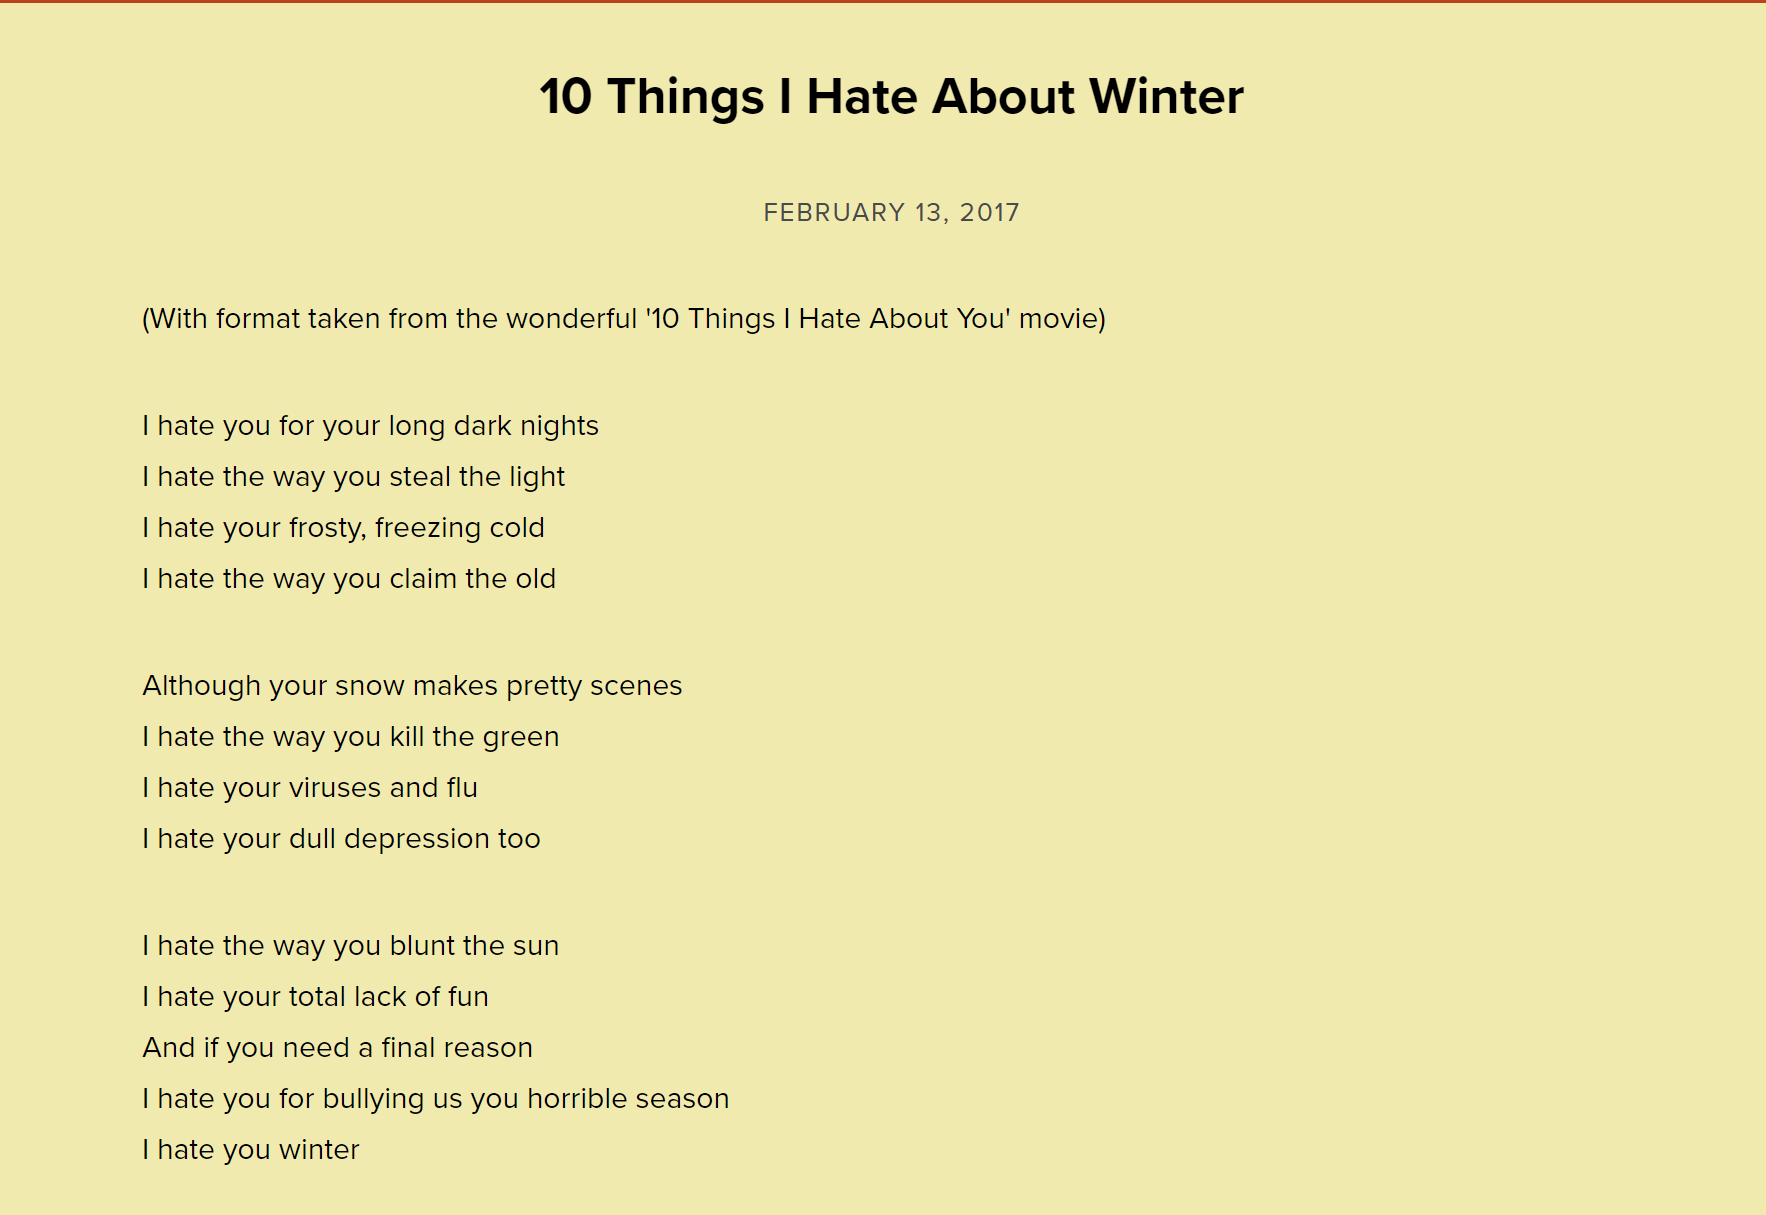 10 Things I Hate About Winter by Neal Zetter